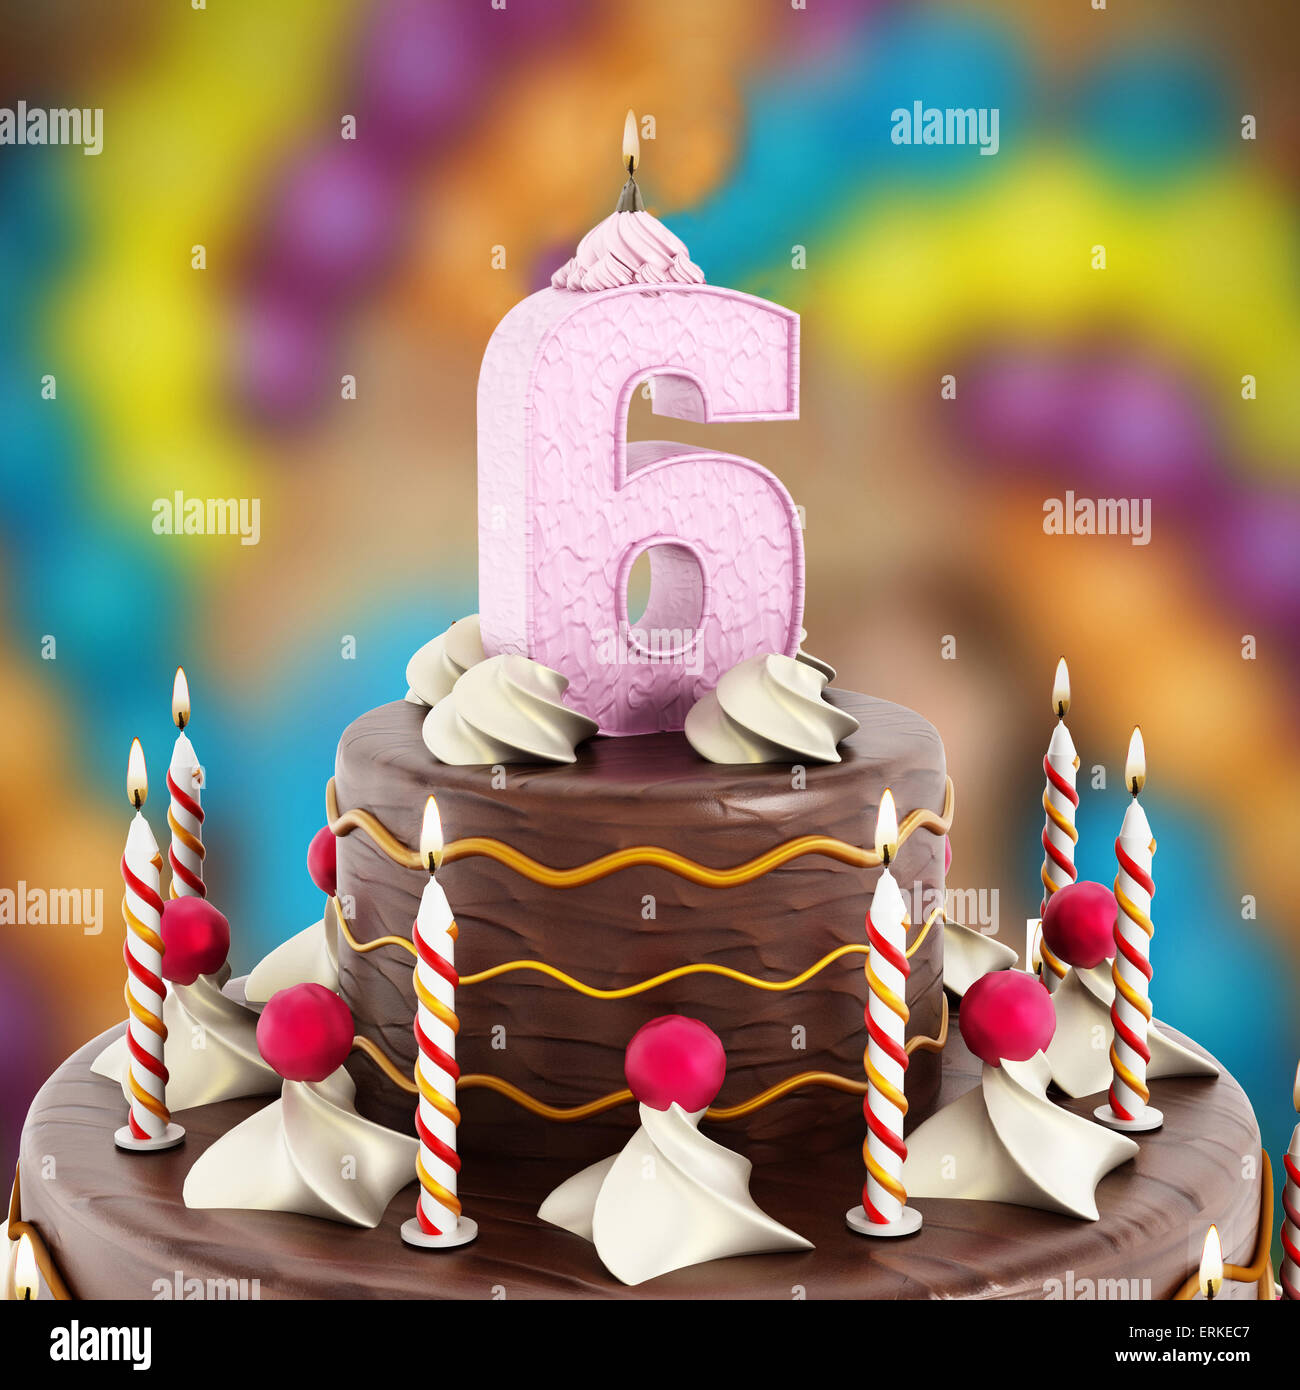 Birthday Cake With Number 6 Lit Candle Stock Photo 83406967 Alamy